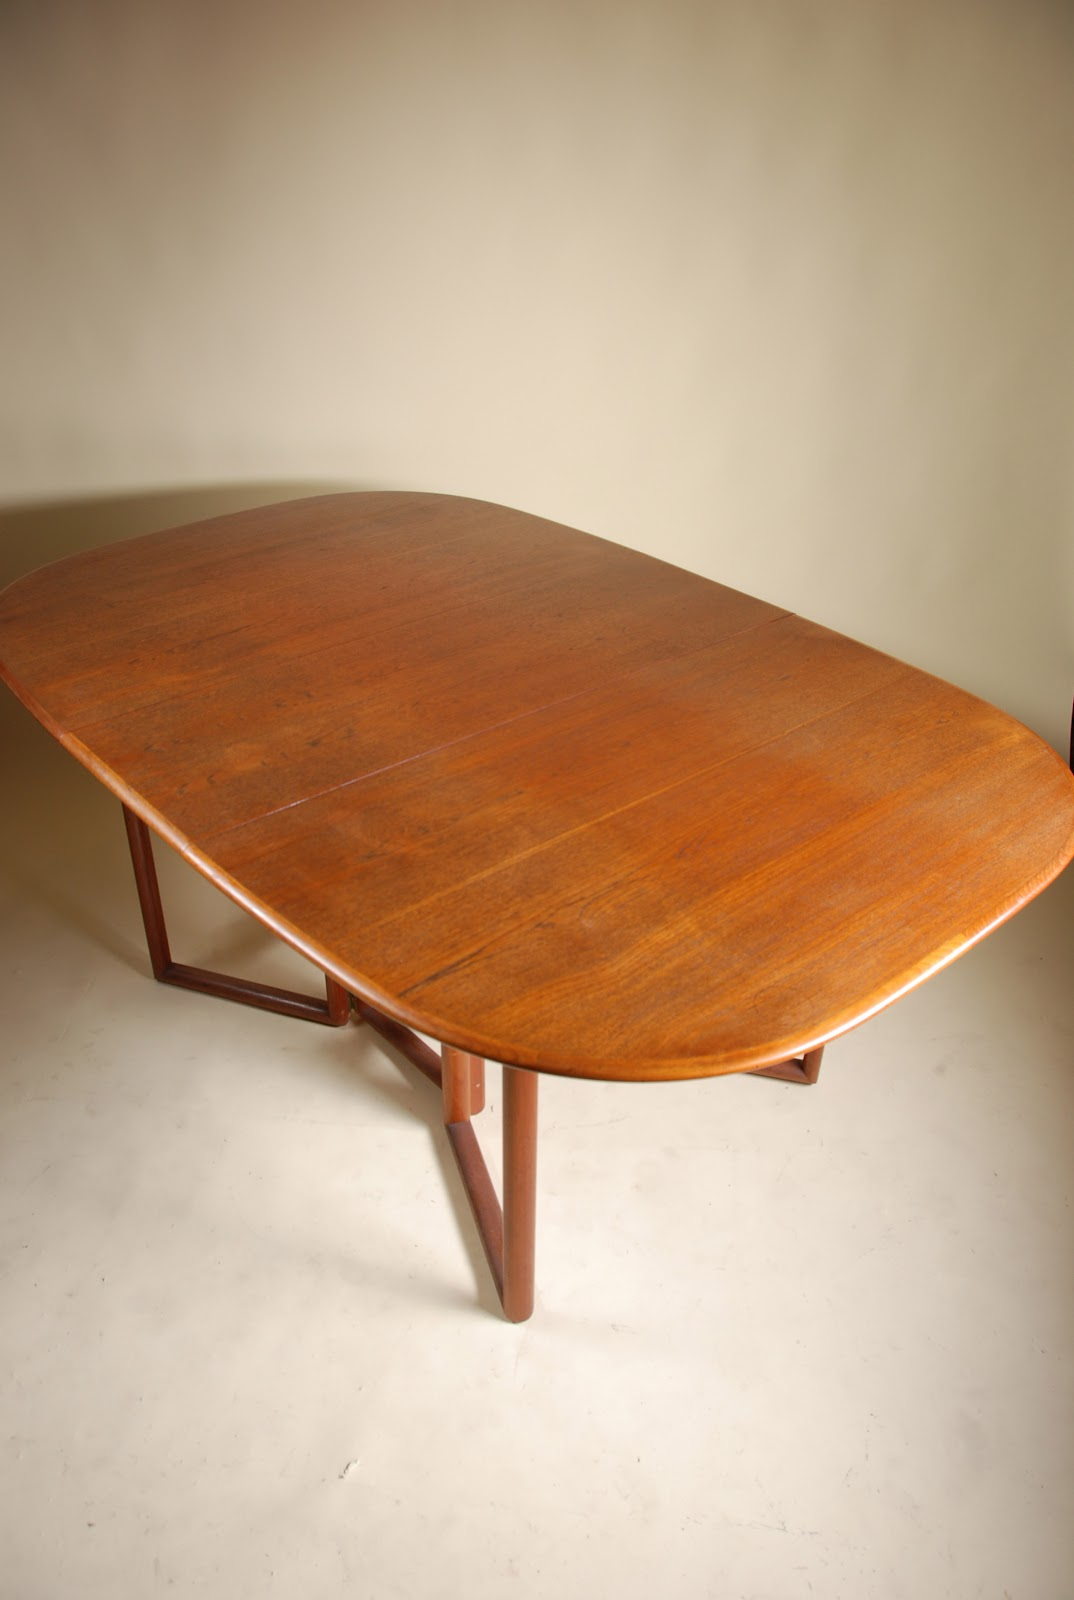 Mid century modern oval folding dining table